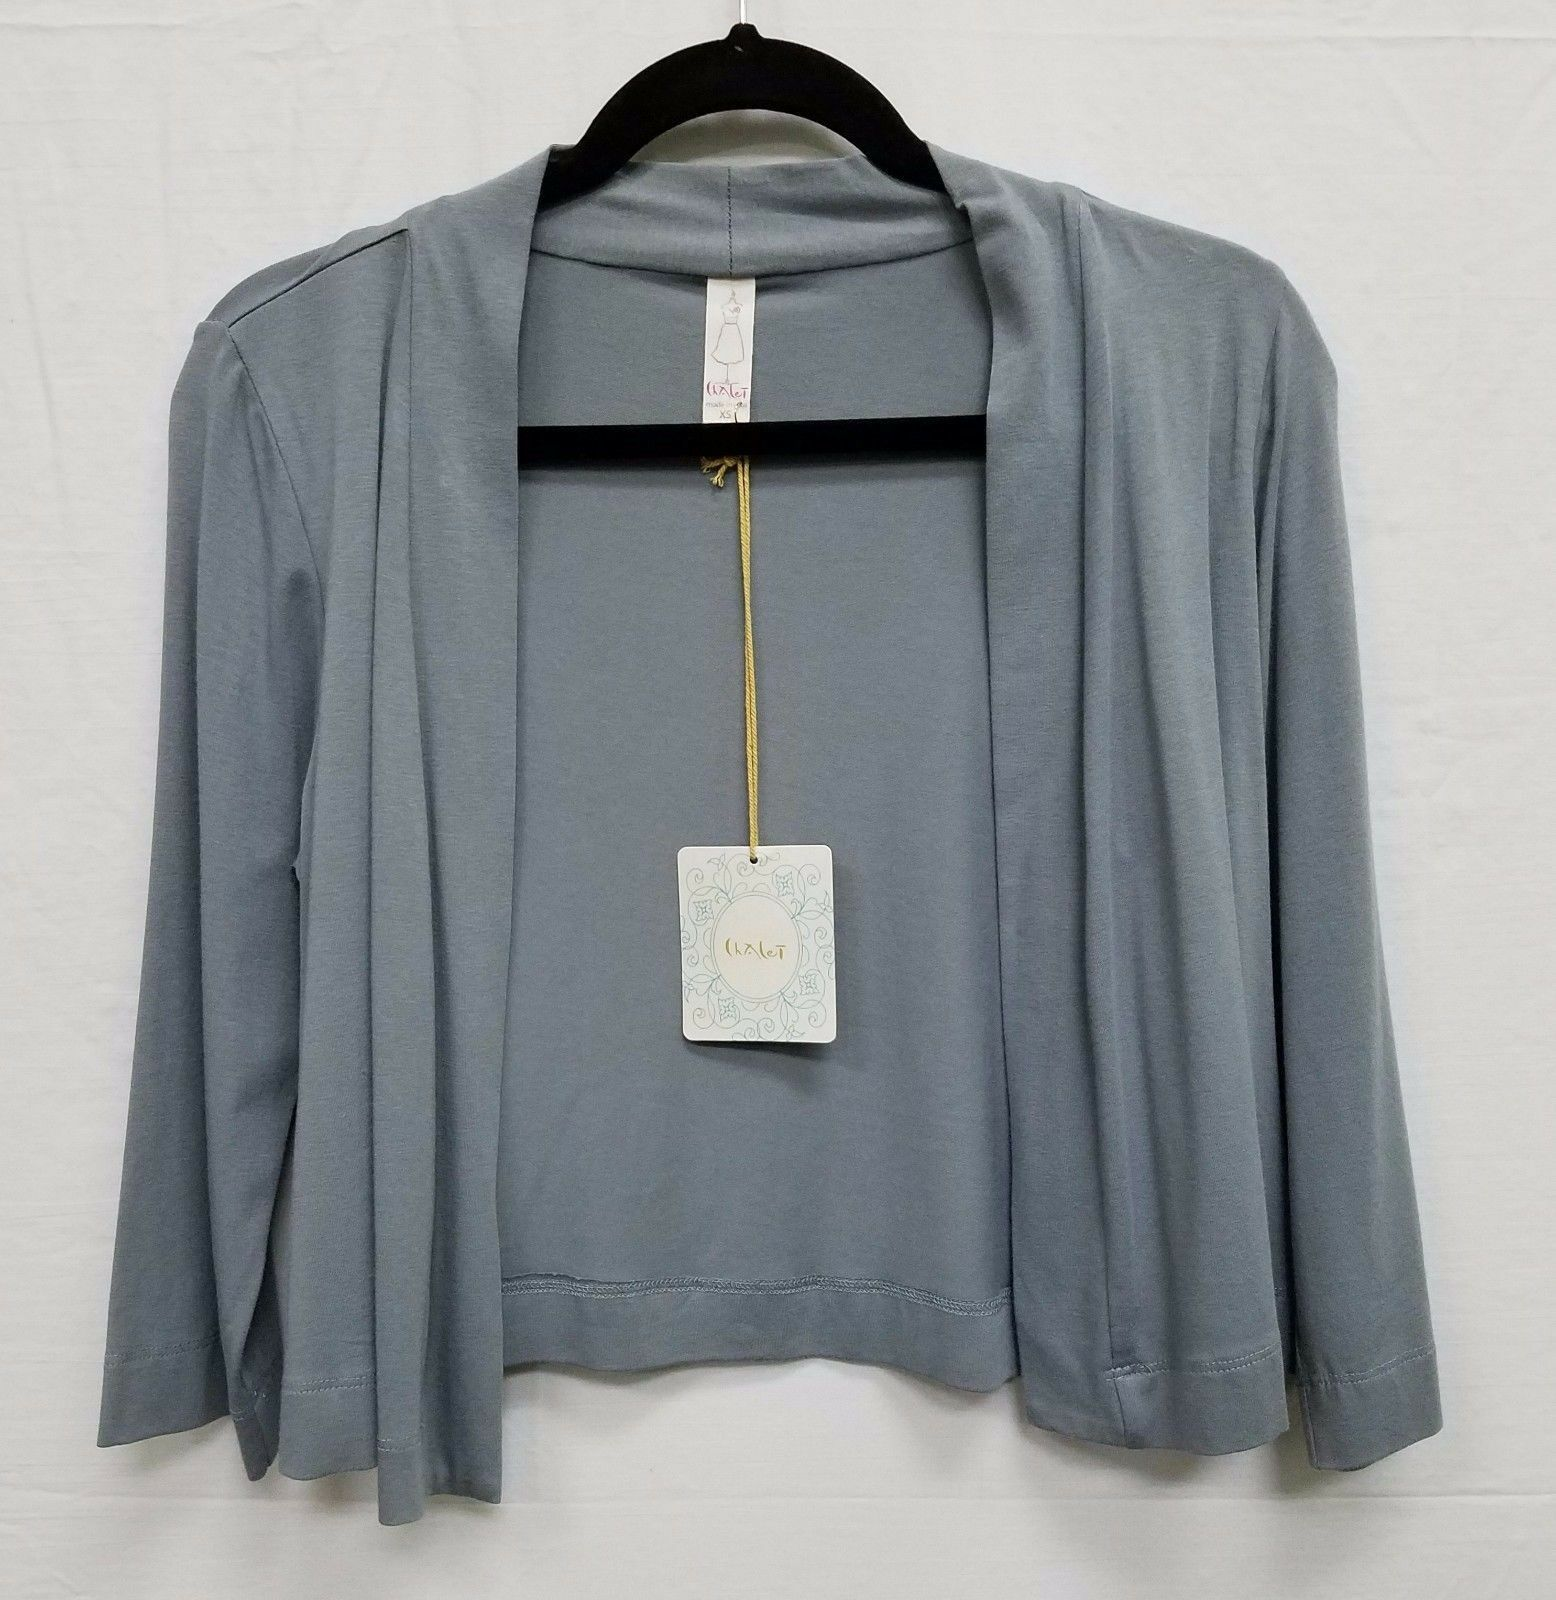 Chalet Simple Jacket Cardigan 3 4 Sleeves Bamboo Cotton Style B55130 NEW